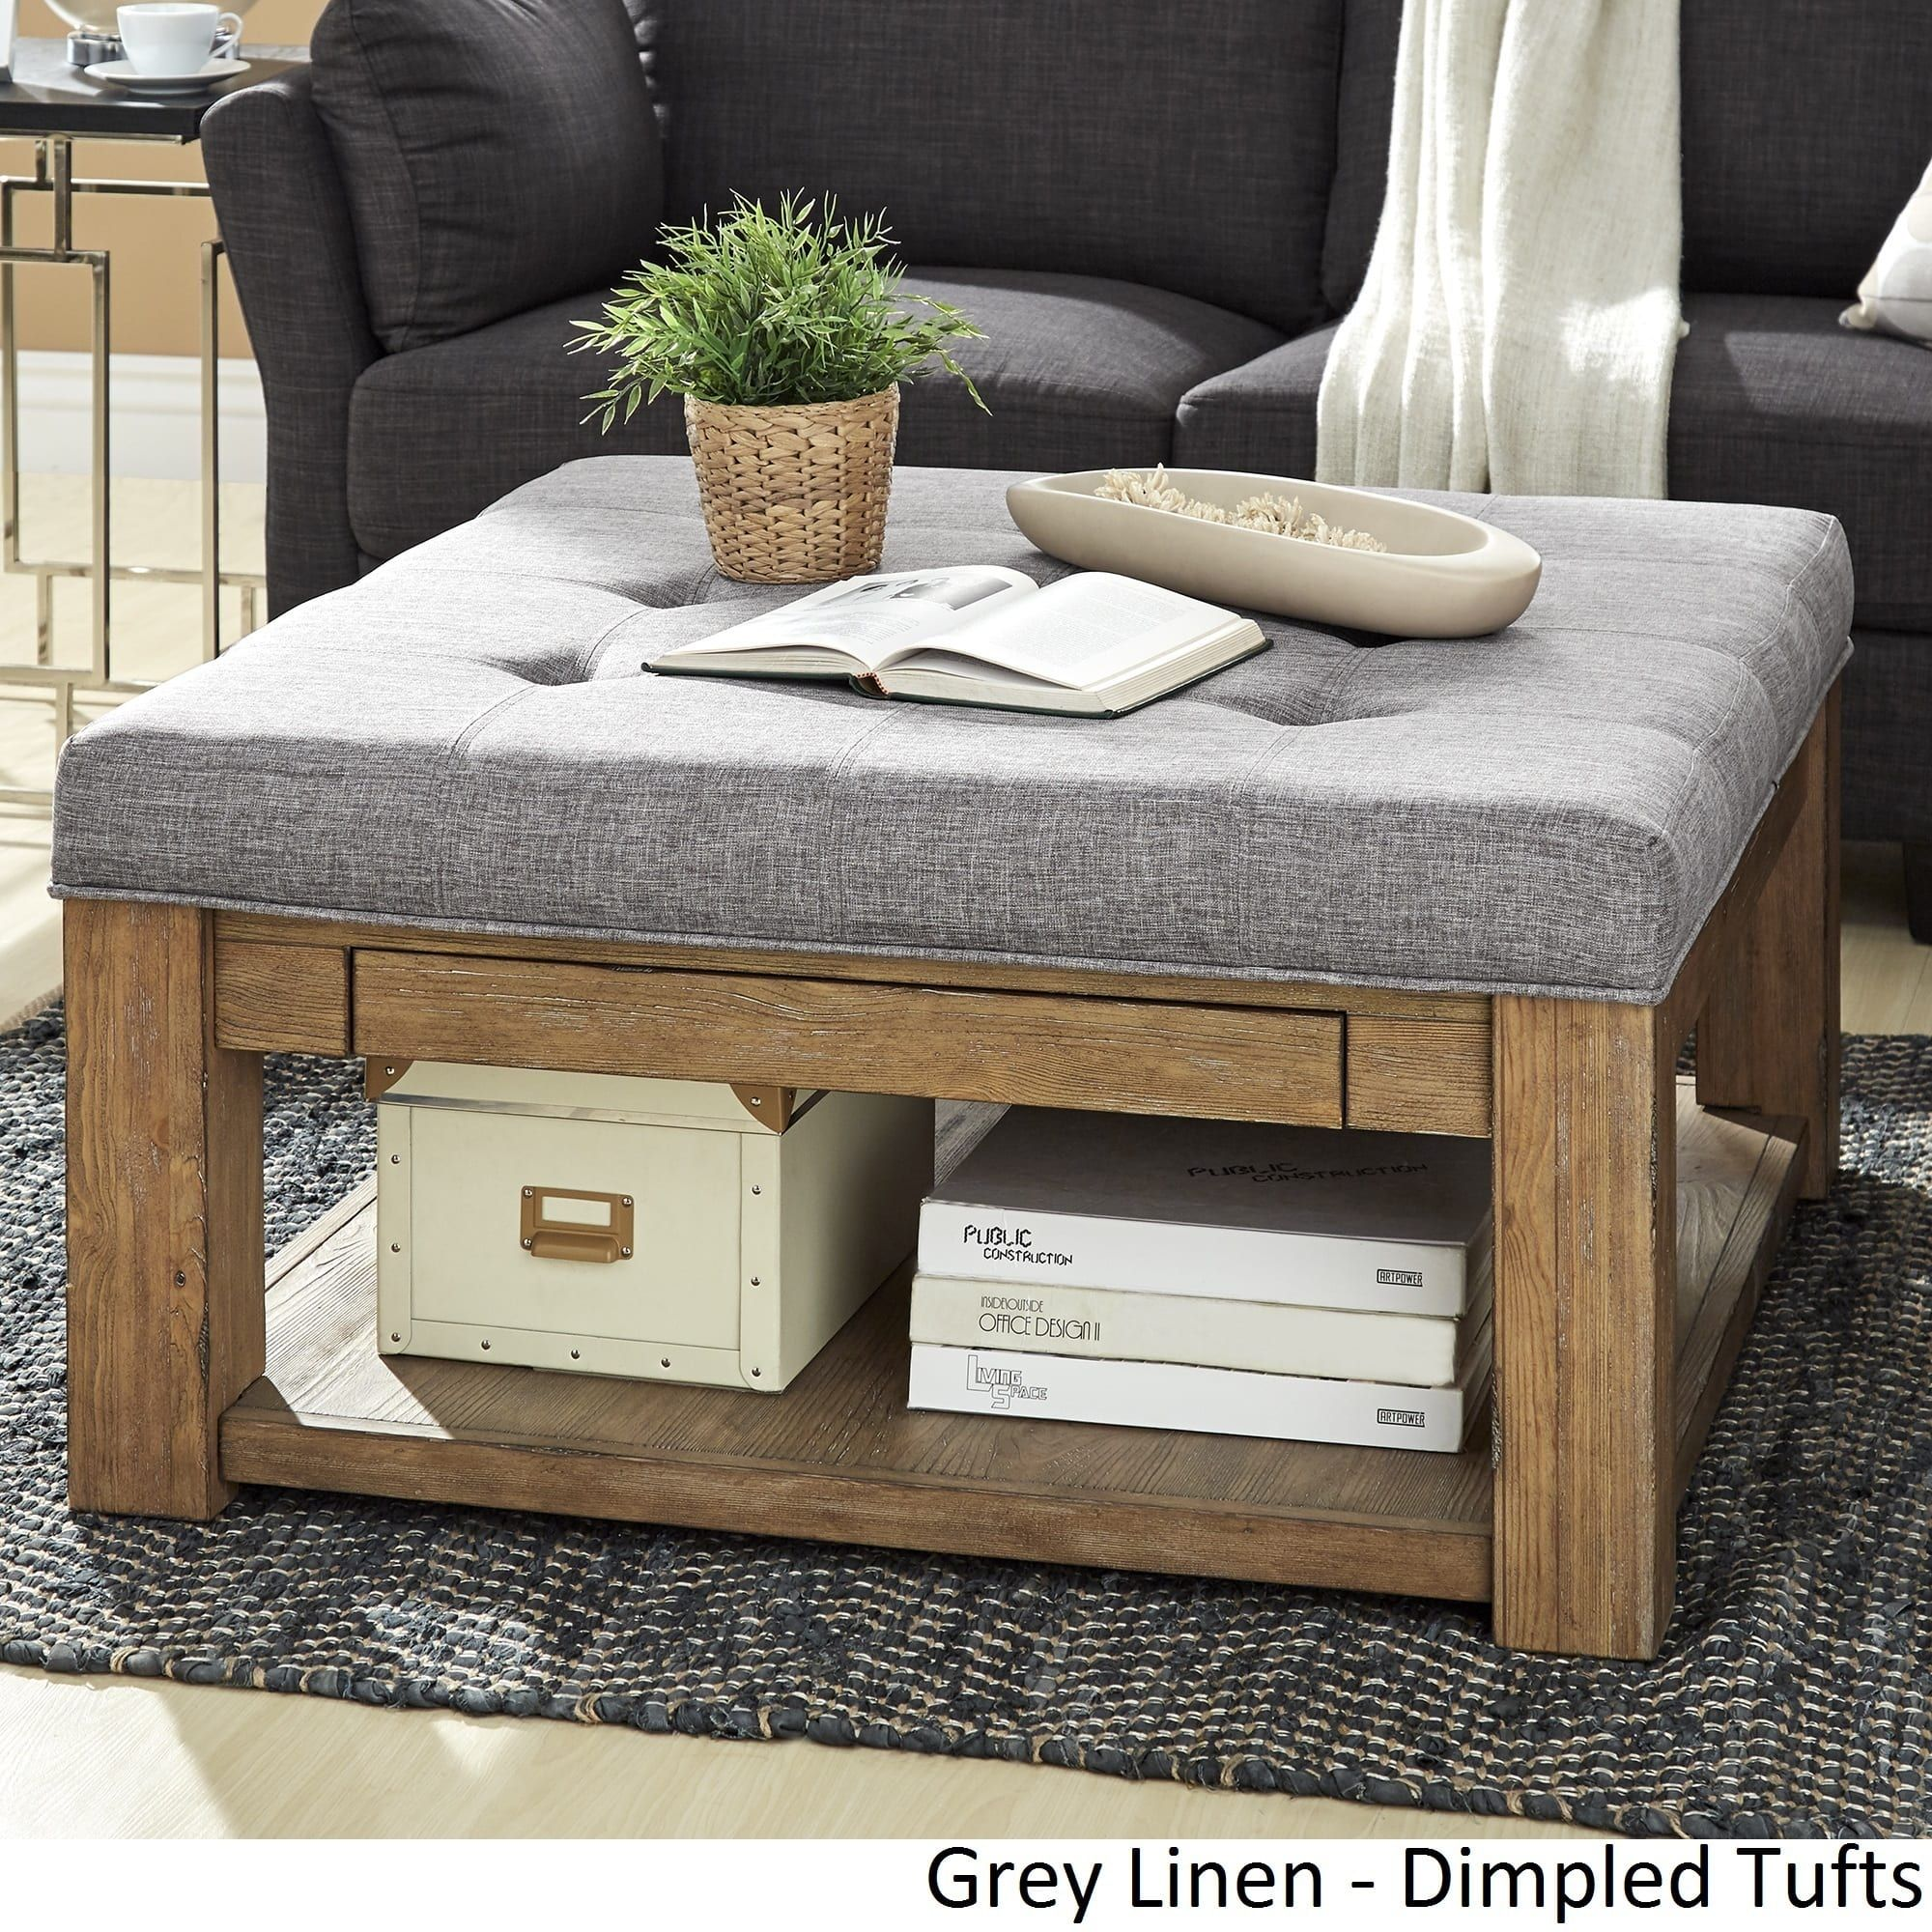 Lennon Pine Square Storage Ottoman Coffee Table by iNSPIRE Q Artisan |  Overstock.com Shopping